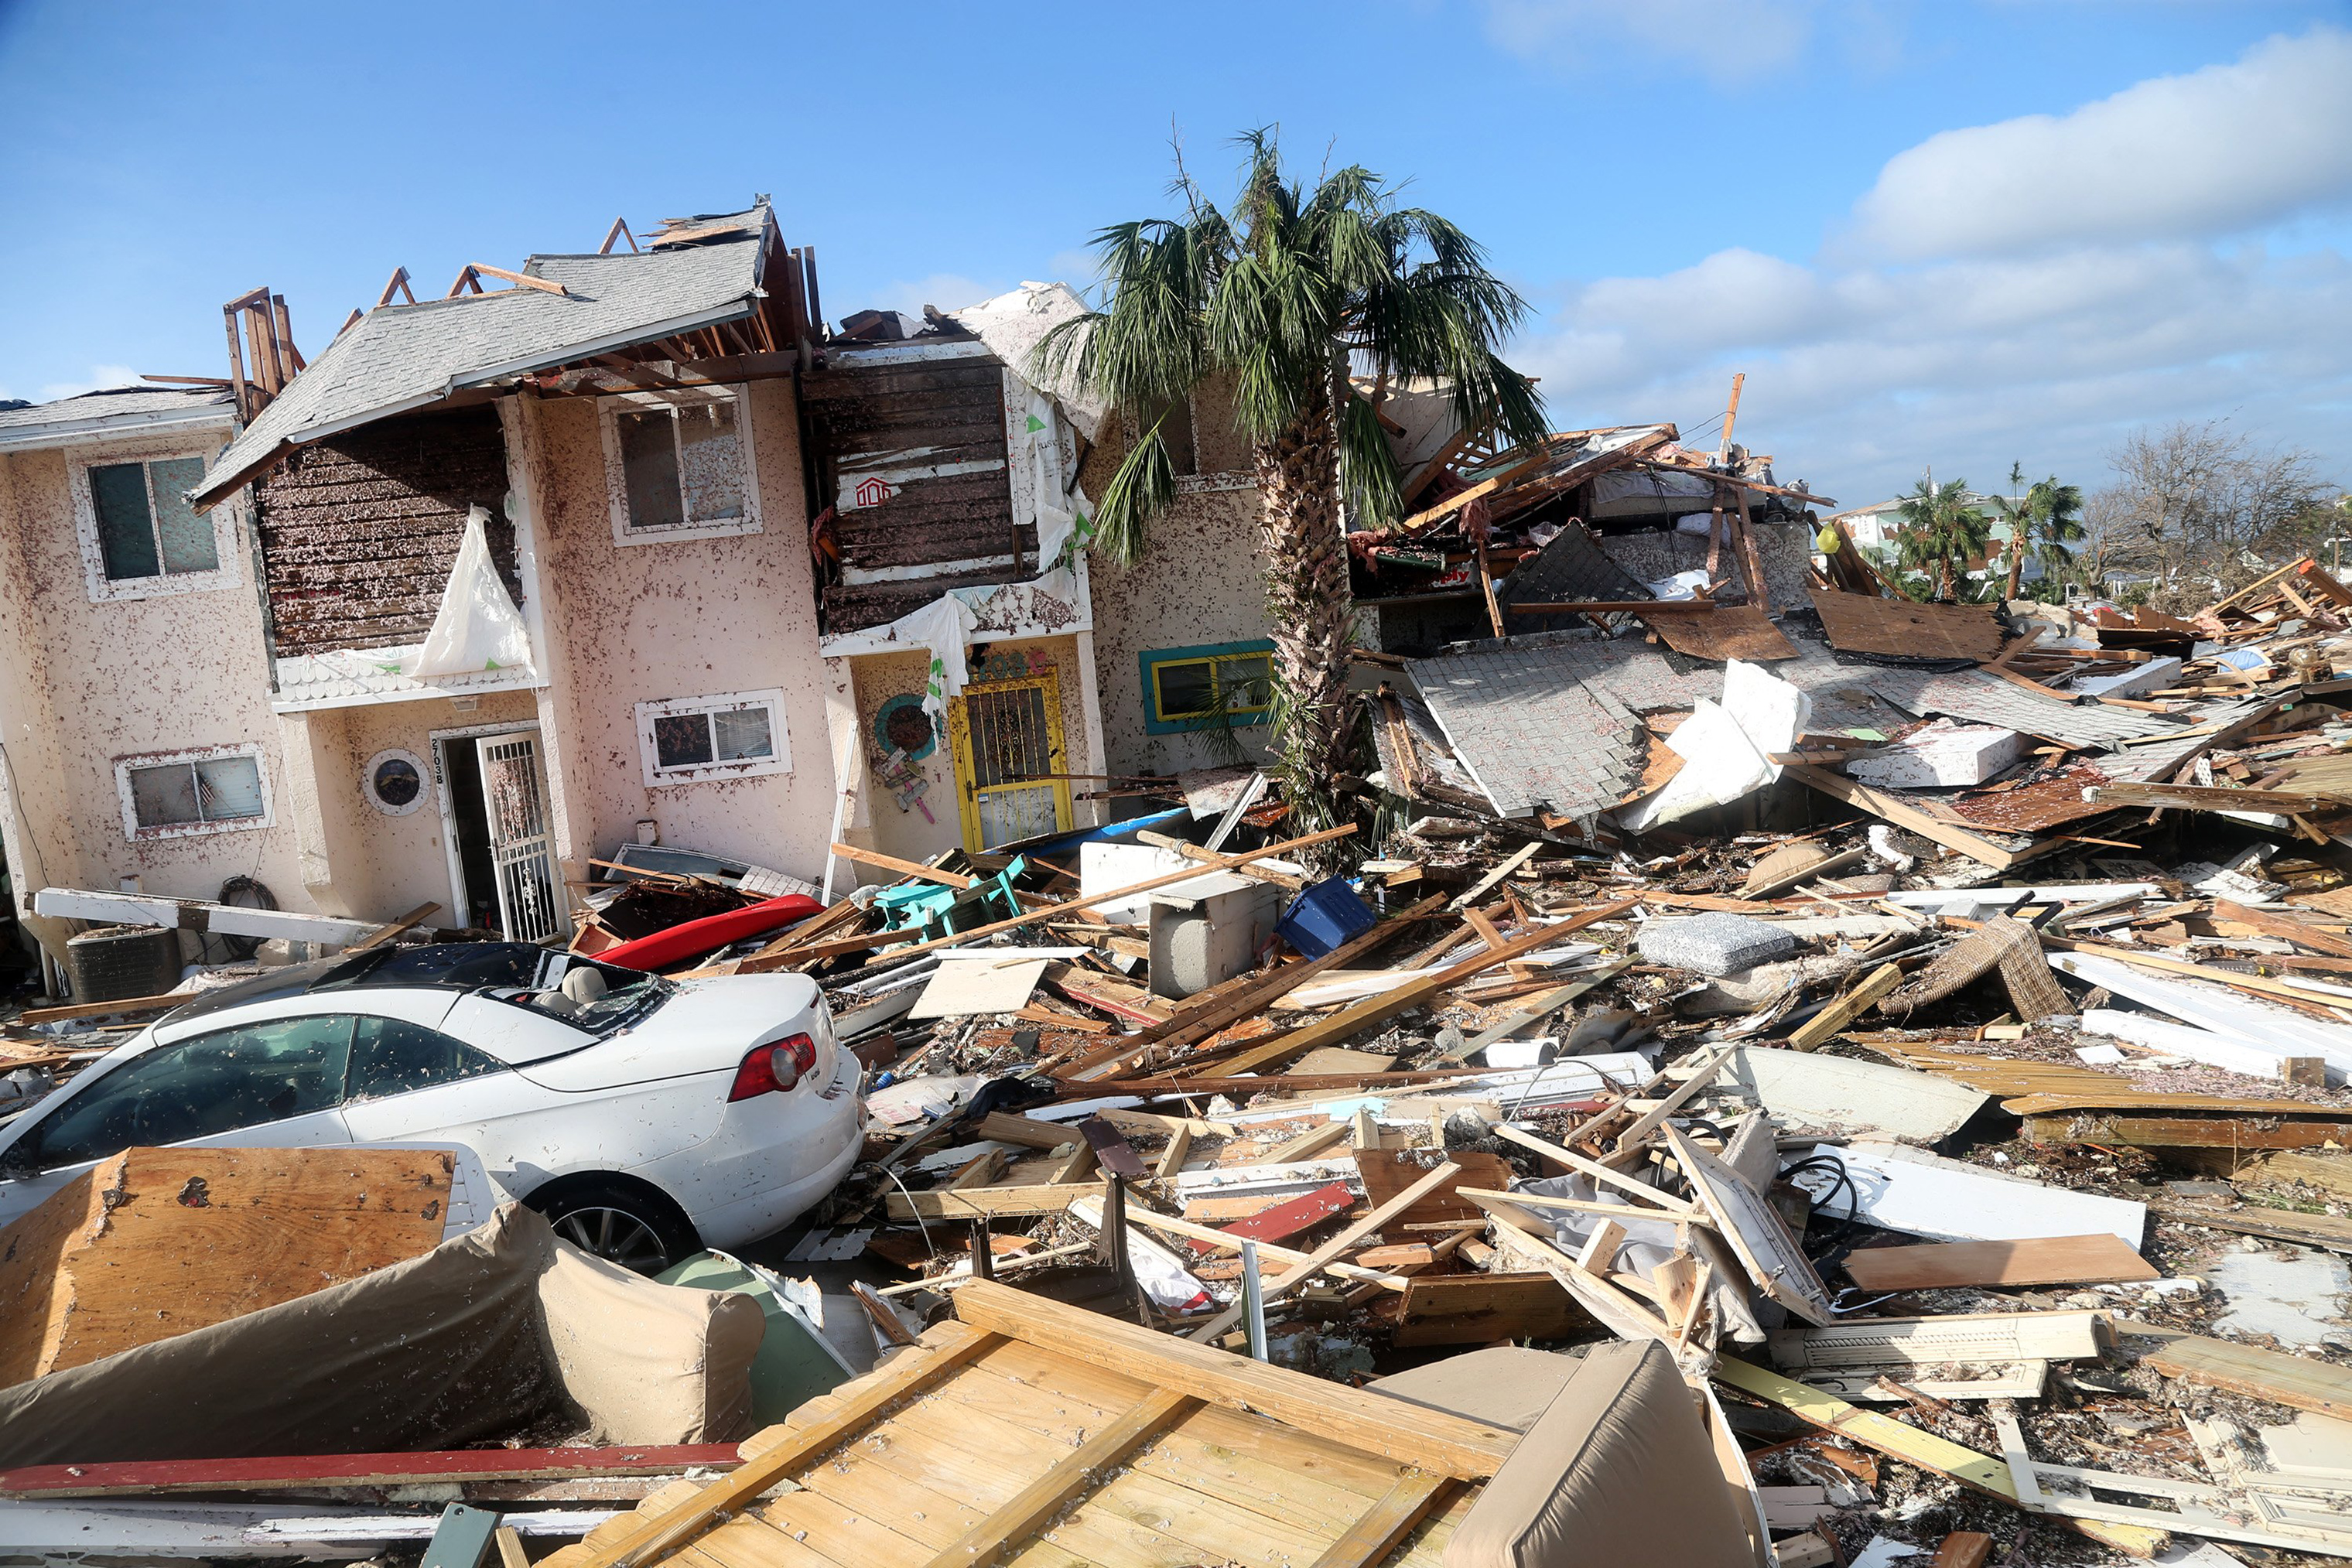 The coastal township of Mexico Beach, lay devastated on Thursday after Hurricane Michael made landfall on Wednesday in the Florida Panhandle.